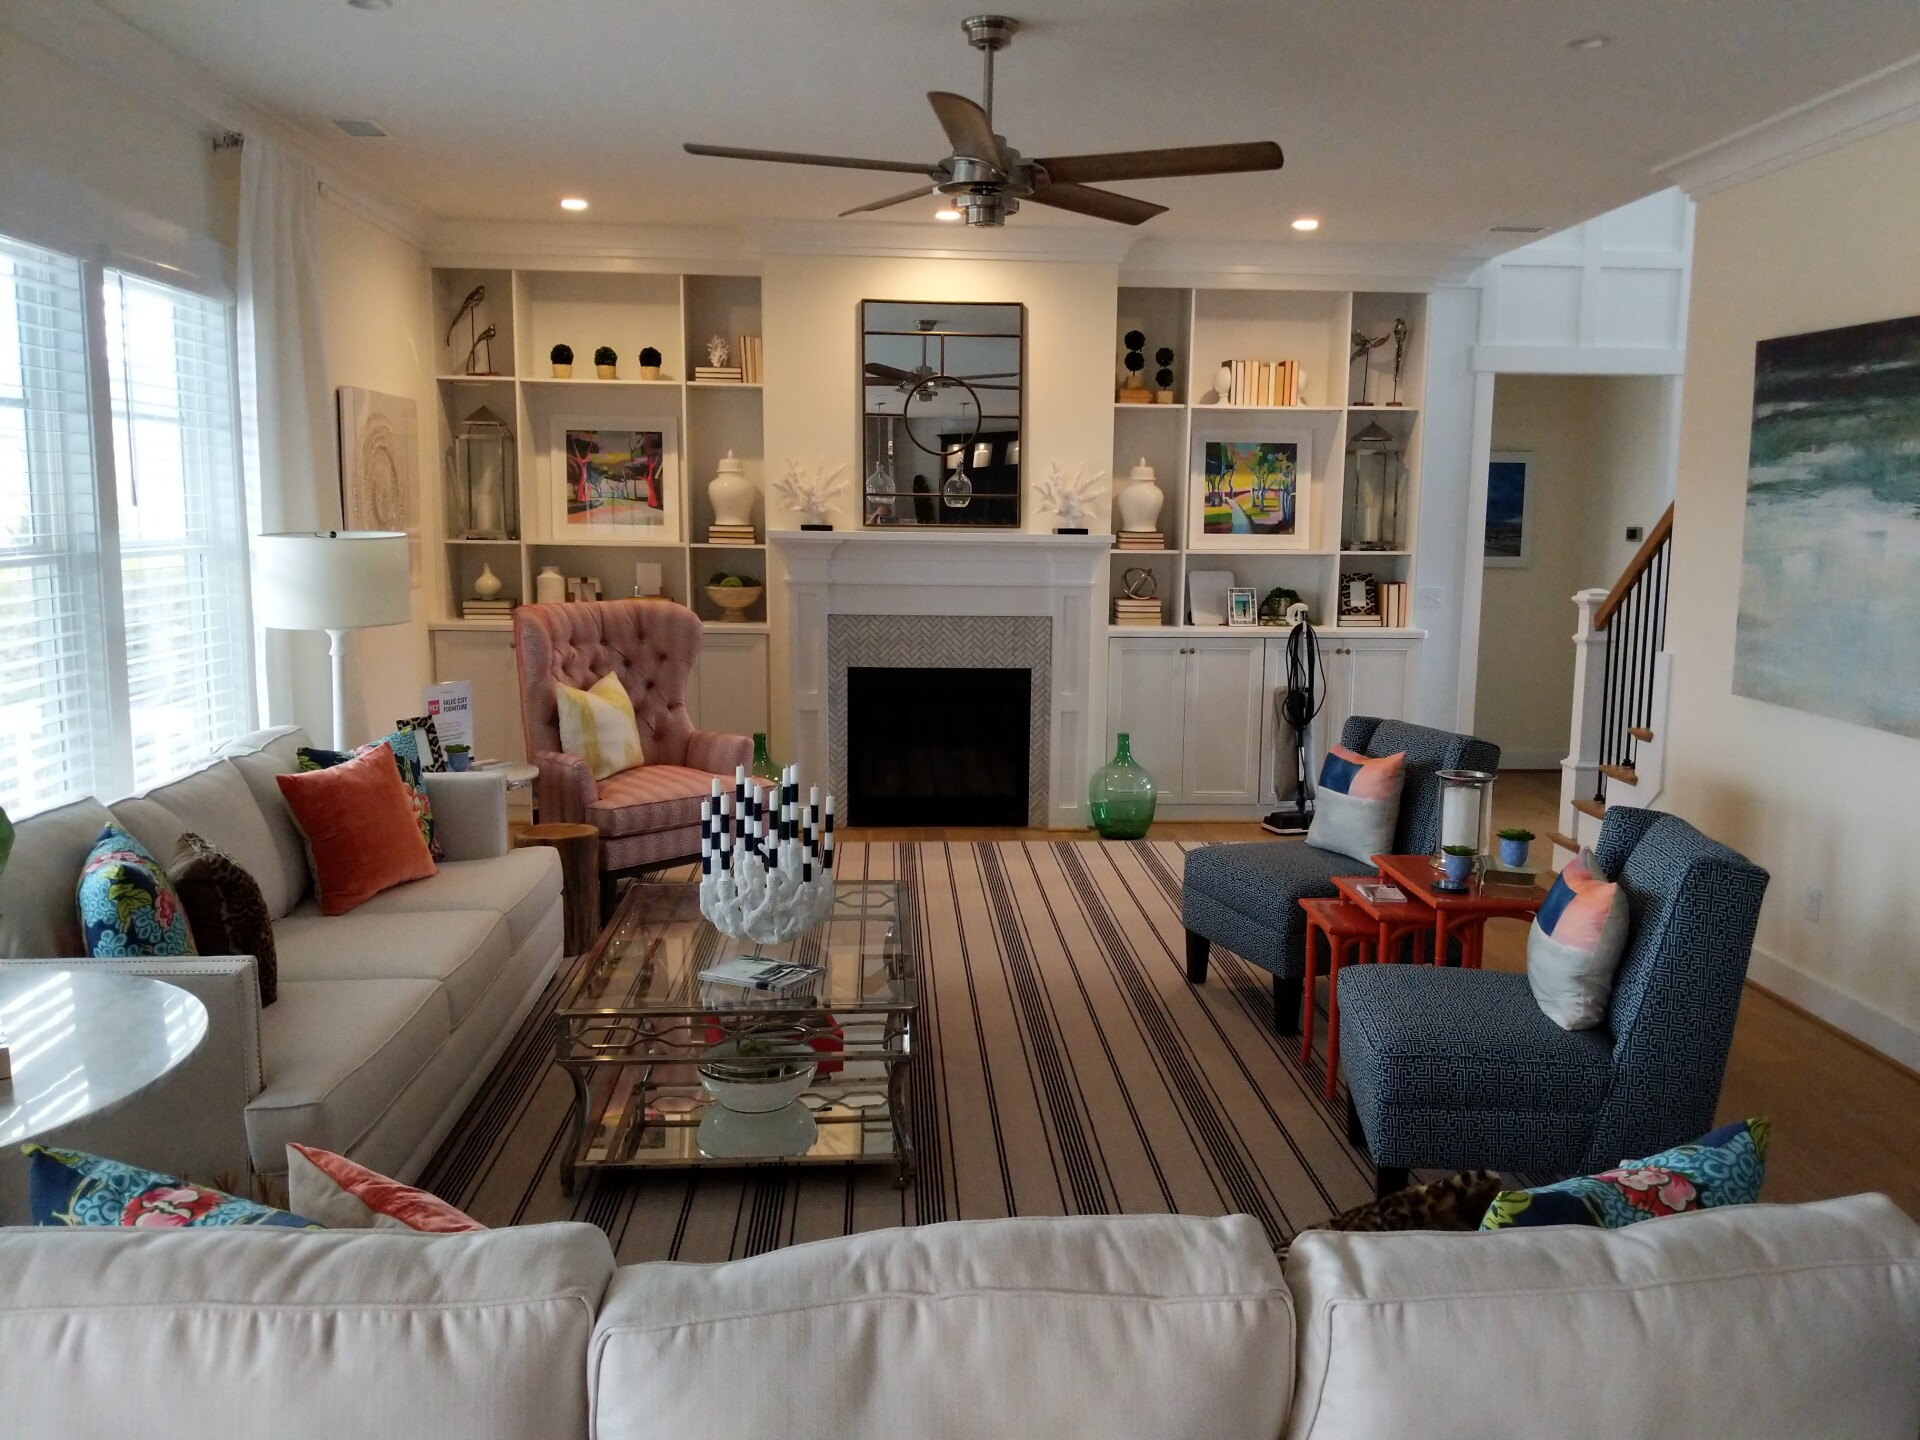 Photos: It's finished! Open house weekends for the 2019 St. Jude Dream Home start March23